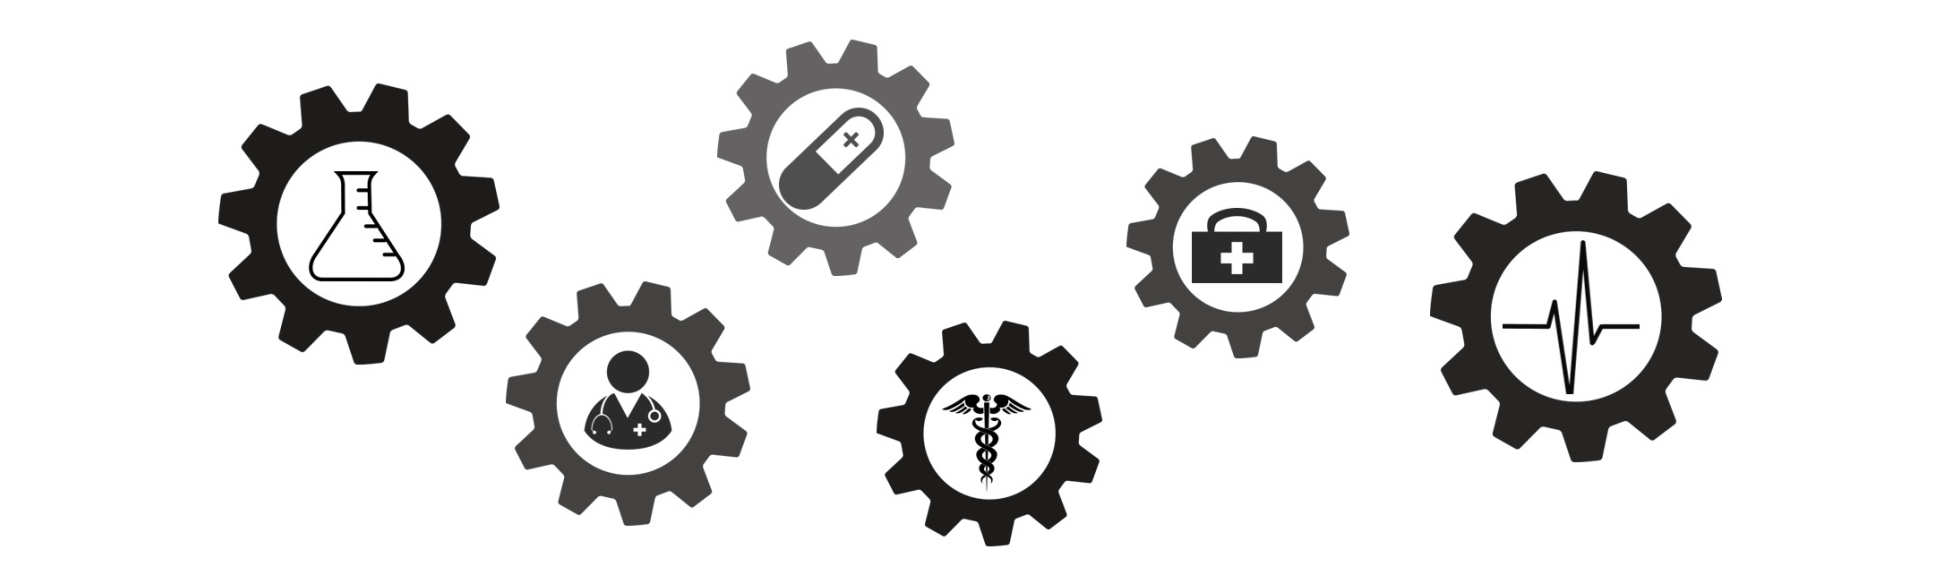 Cog icons with icons depicting health and research inside